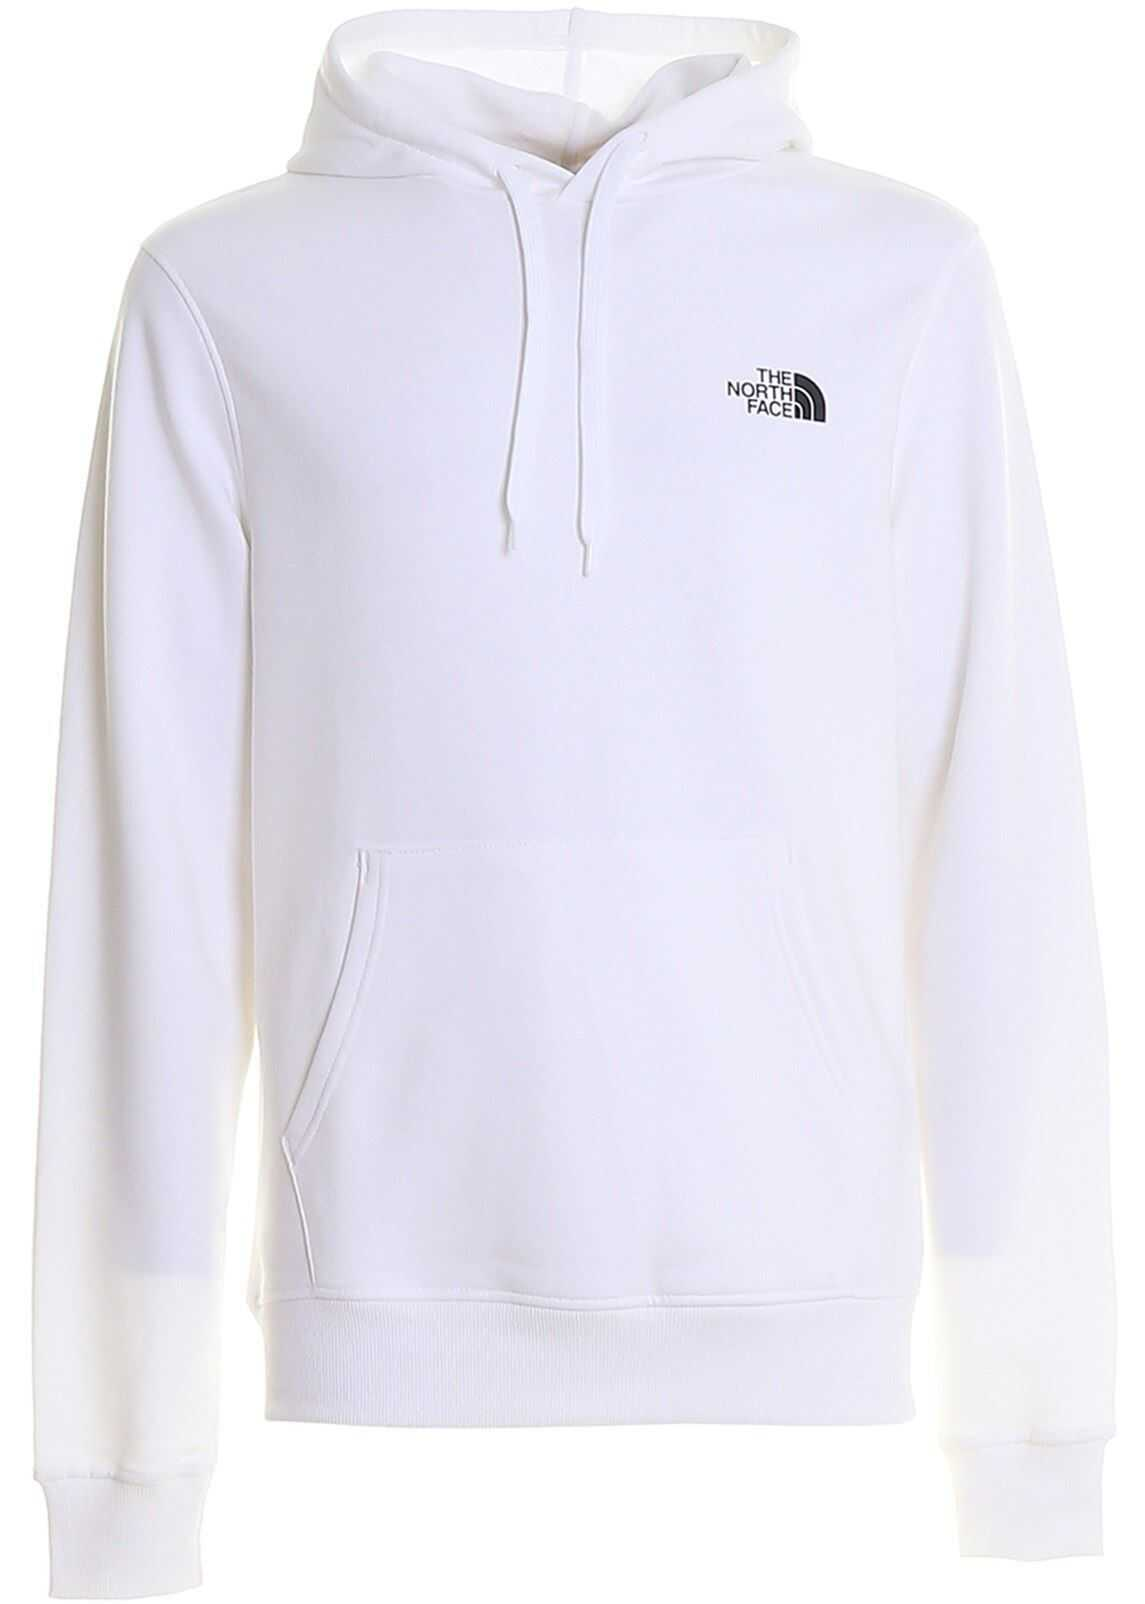 The North Face Graphic Print Hoodie White